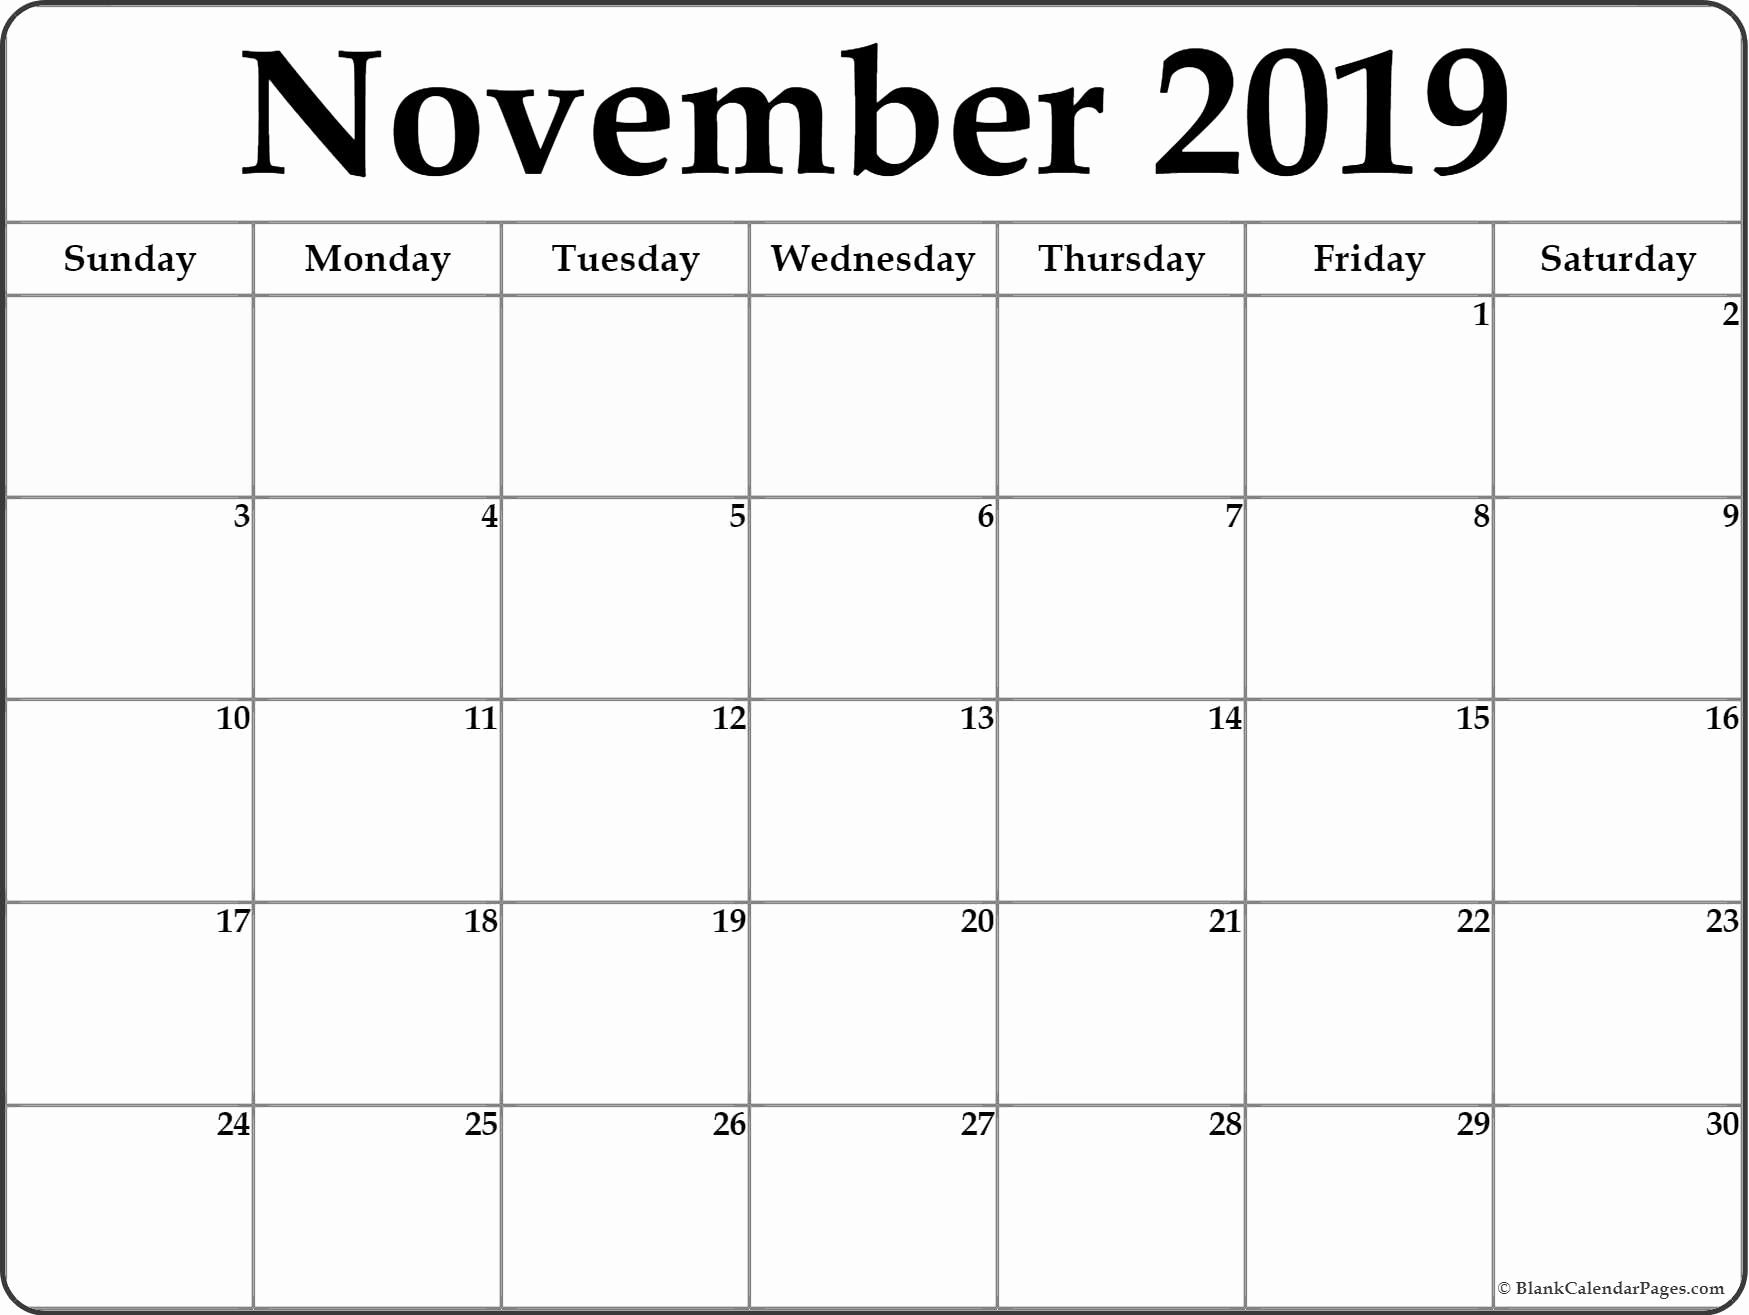 November 2019 Blank Calendar Printable Templates With Notes